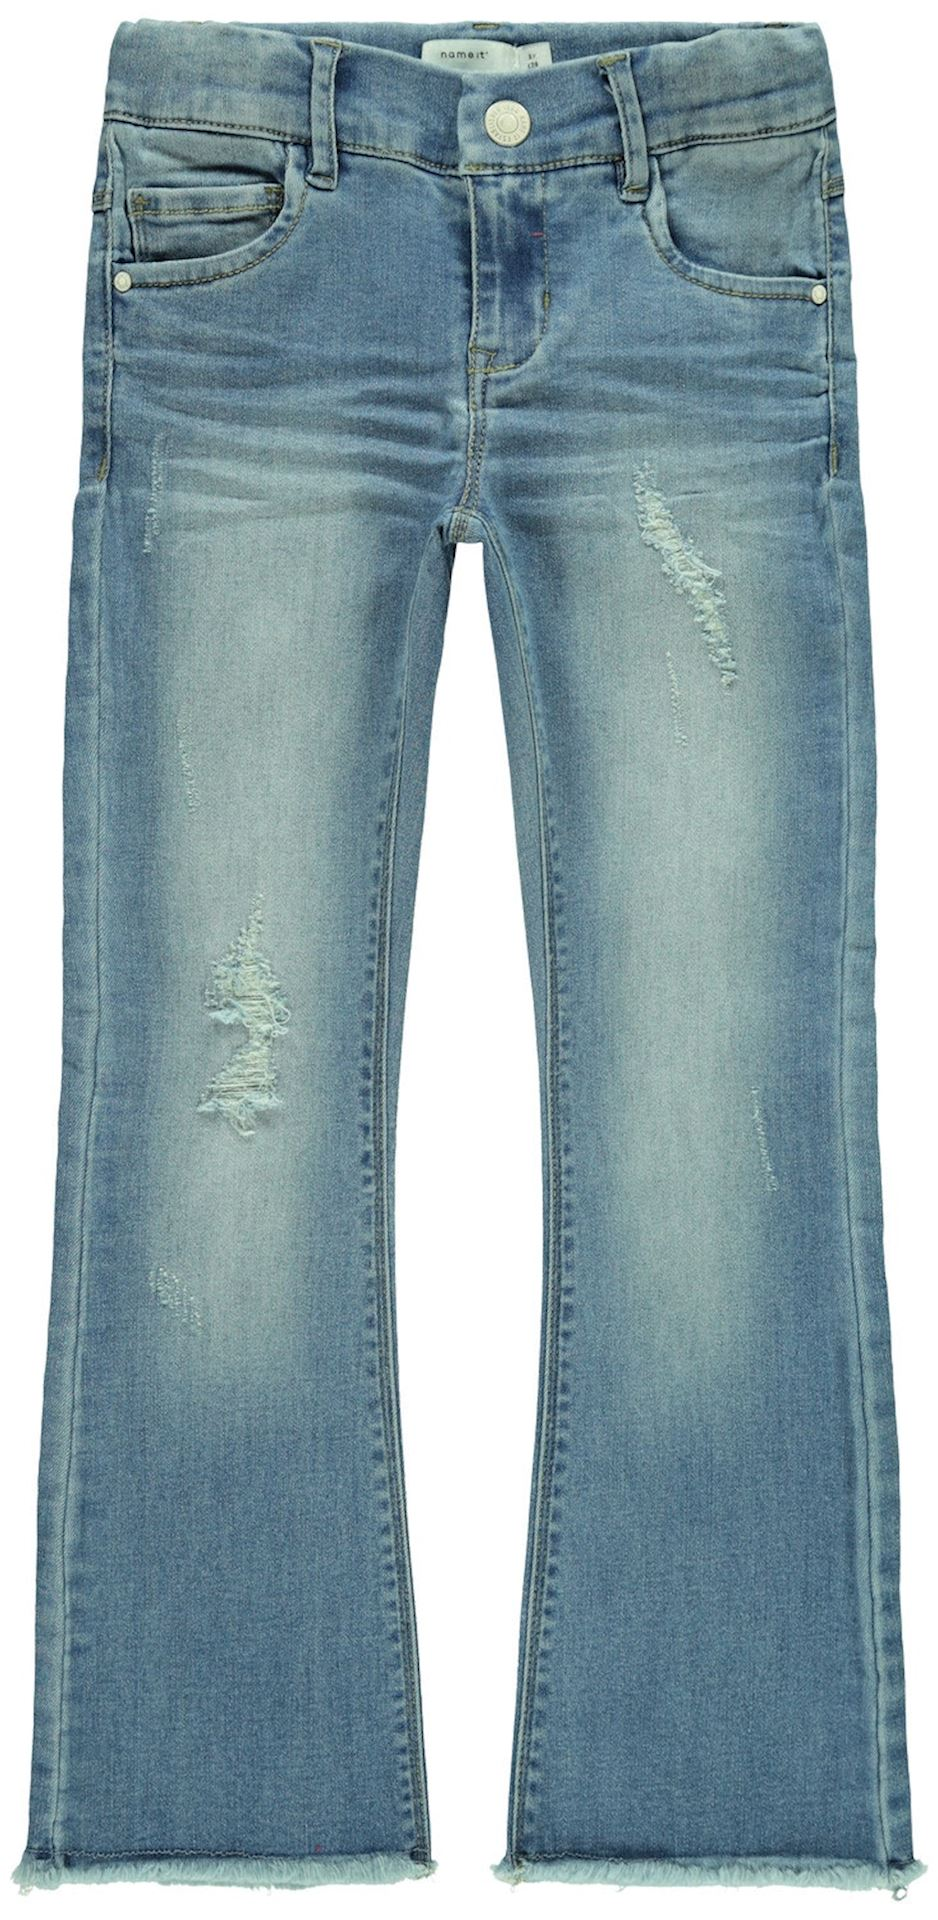 13172813 | NAME IT Tofia Jeans Boot 7/8 girls